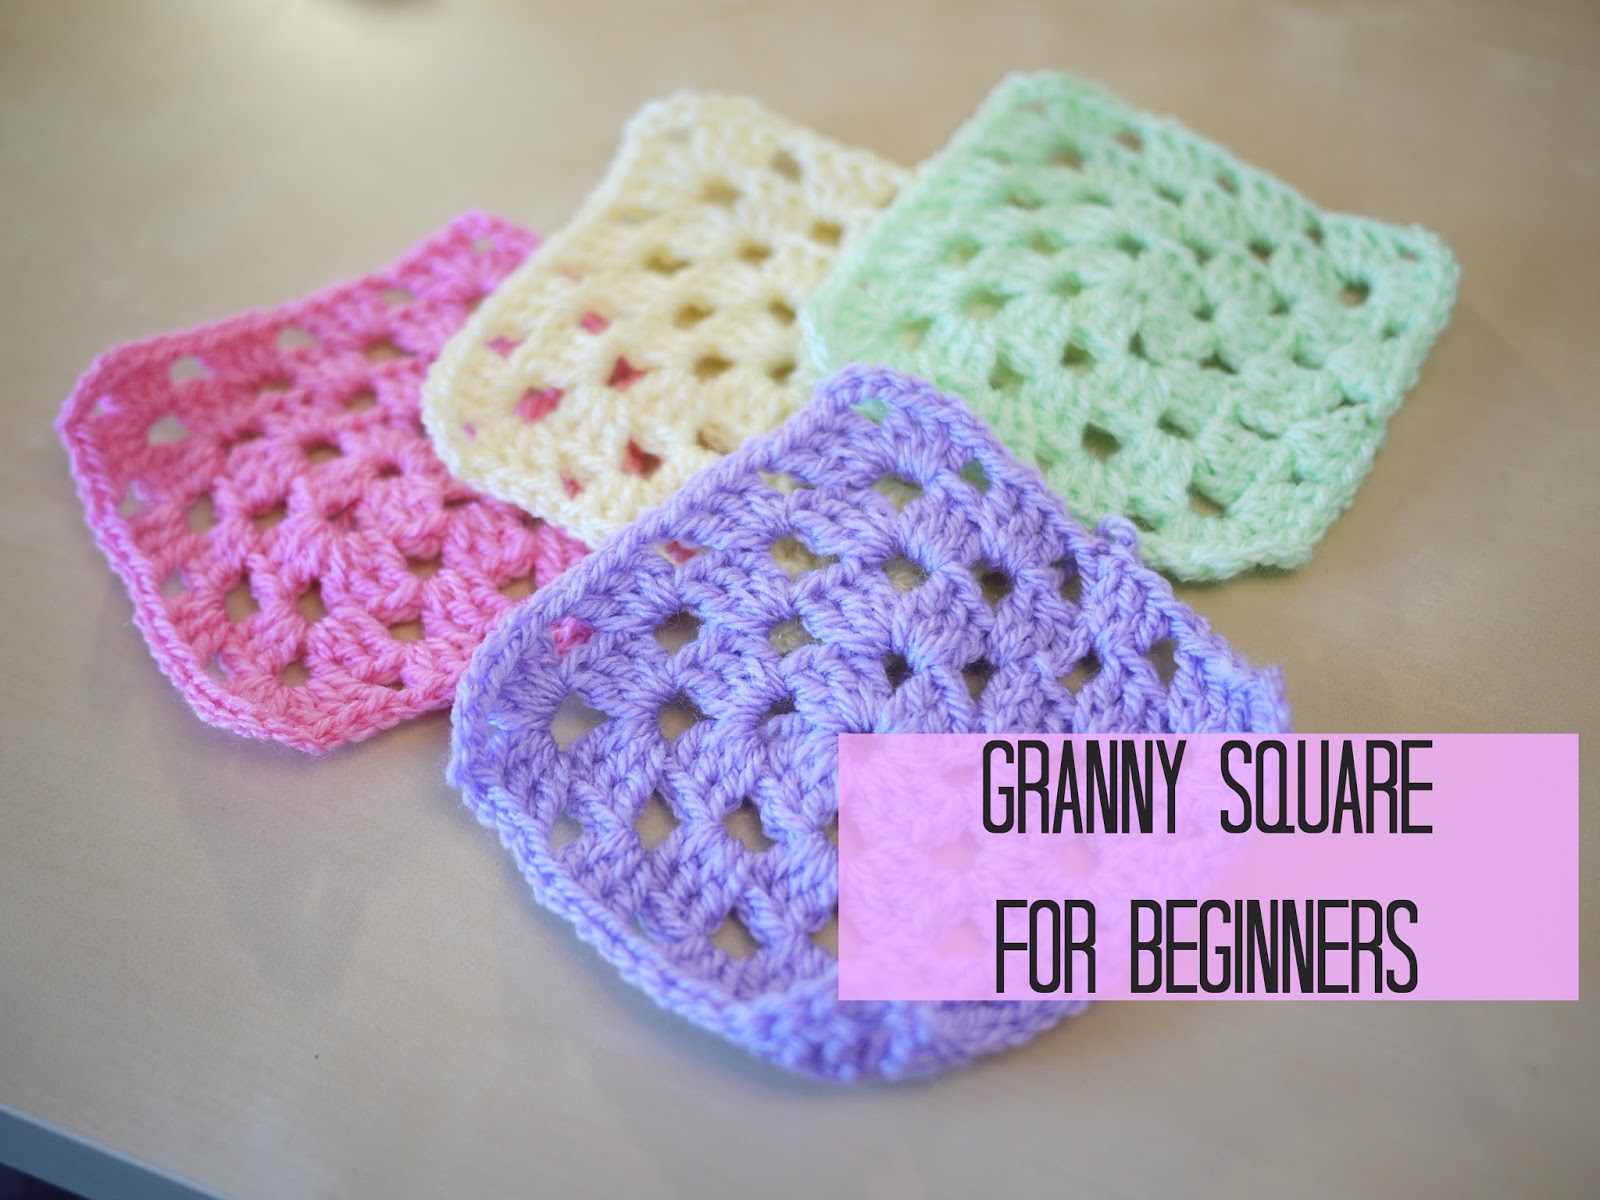 Crochet Basic Granny Square Tutorial : Crochet Granny Square tutorial - Bella Coco by Sarah-Jayne